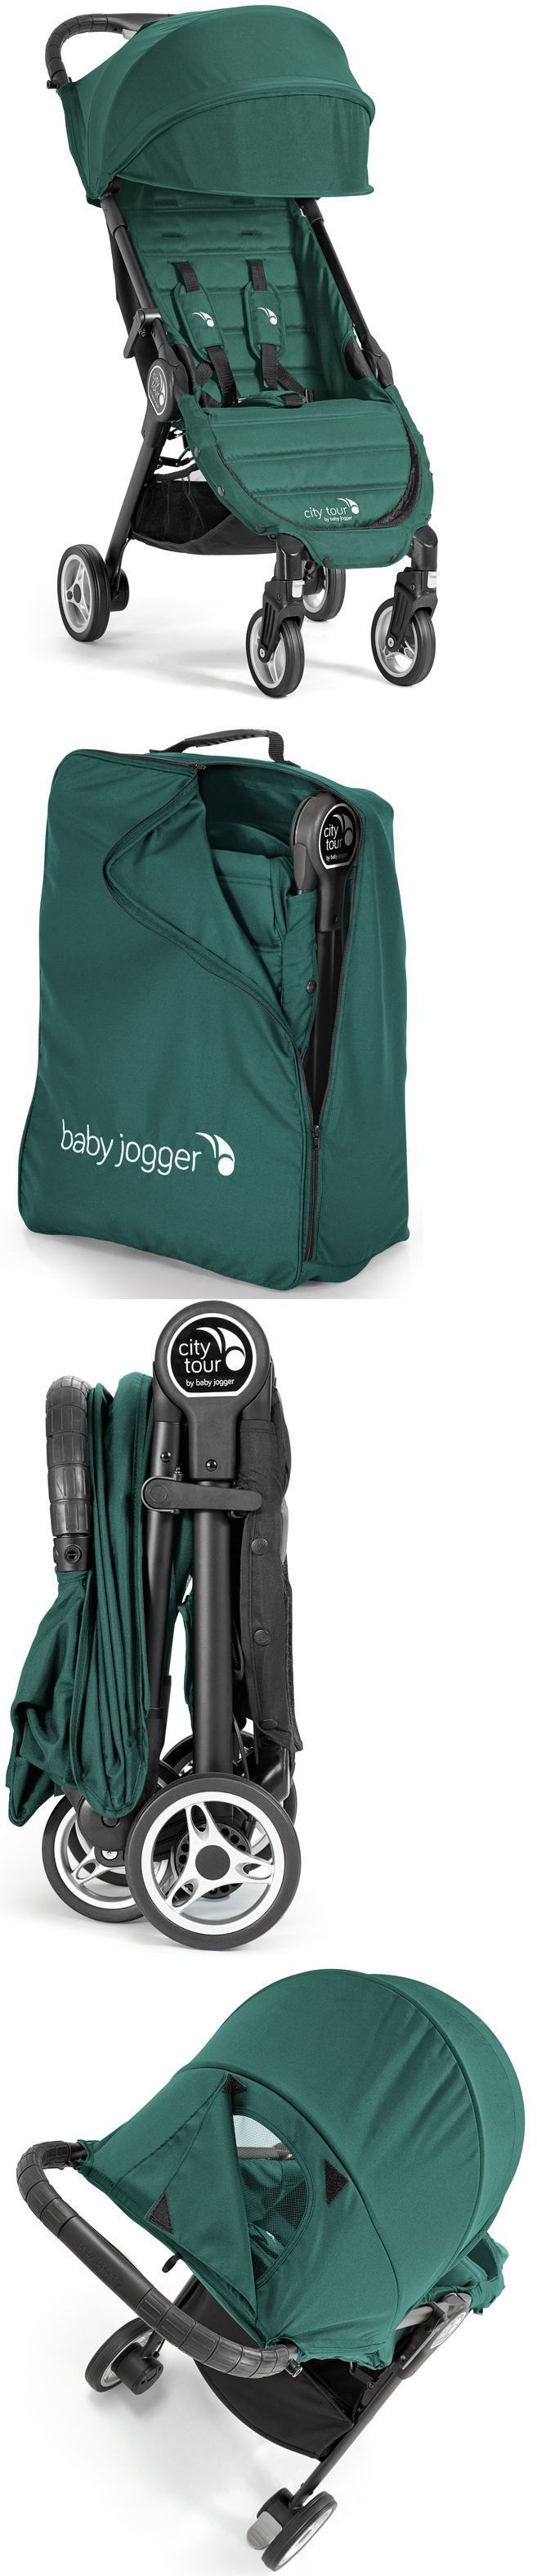 Other Stroller Accessories 180917: Baby Jogger City Tour Lightweight Compact Travel Stroller Juniper W Bag New -> BUY IT NOW ONLY: $169.99 on eBay!